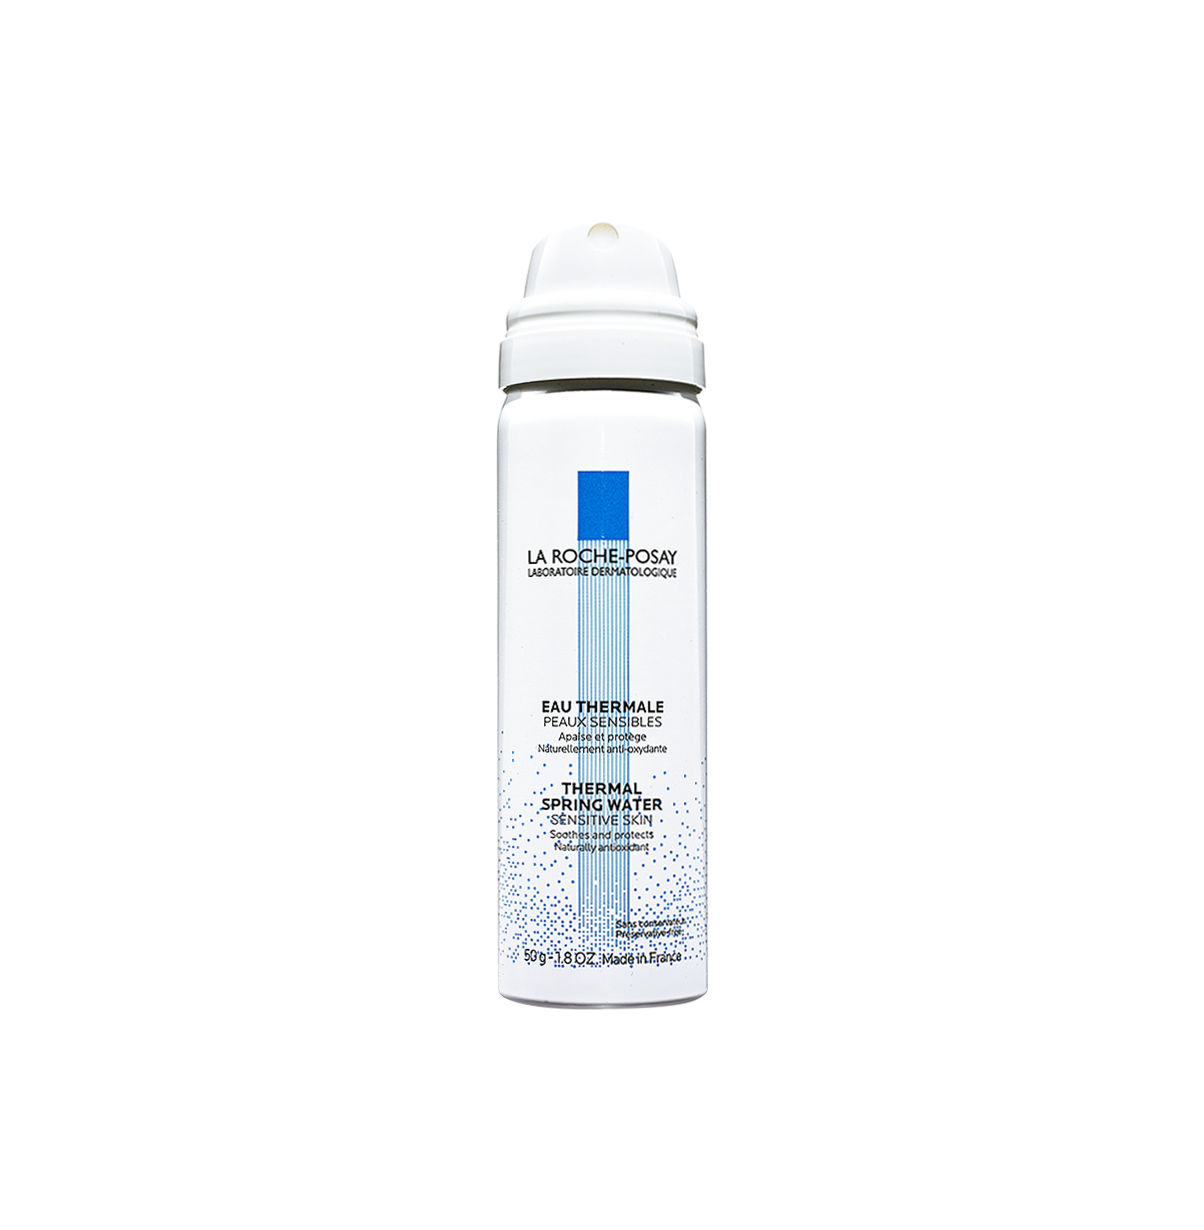 La Roche-Posay Thermal Spring Water Facial Mist